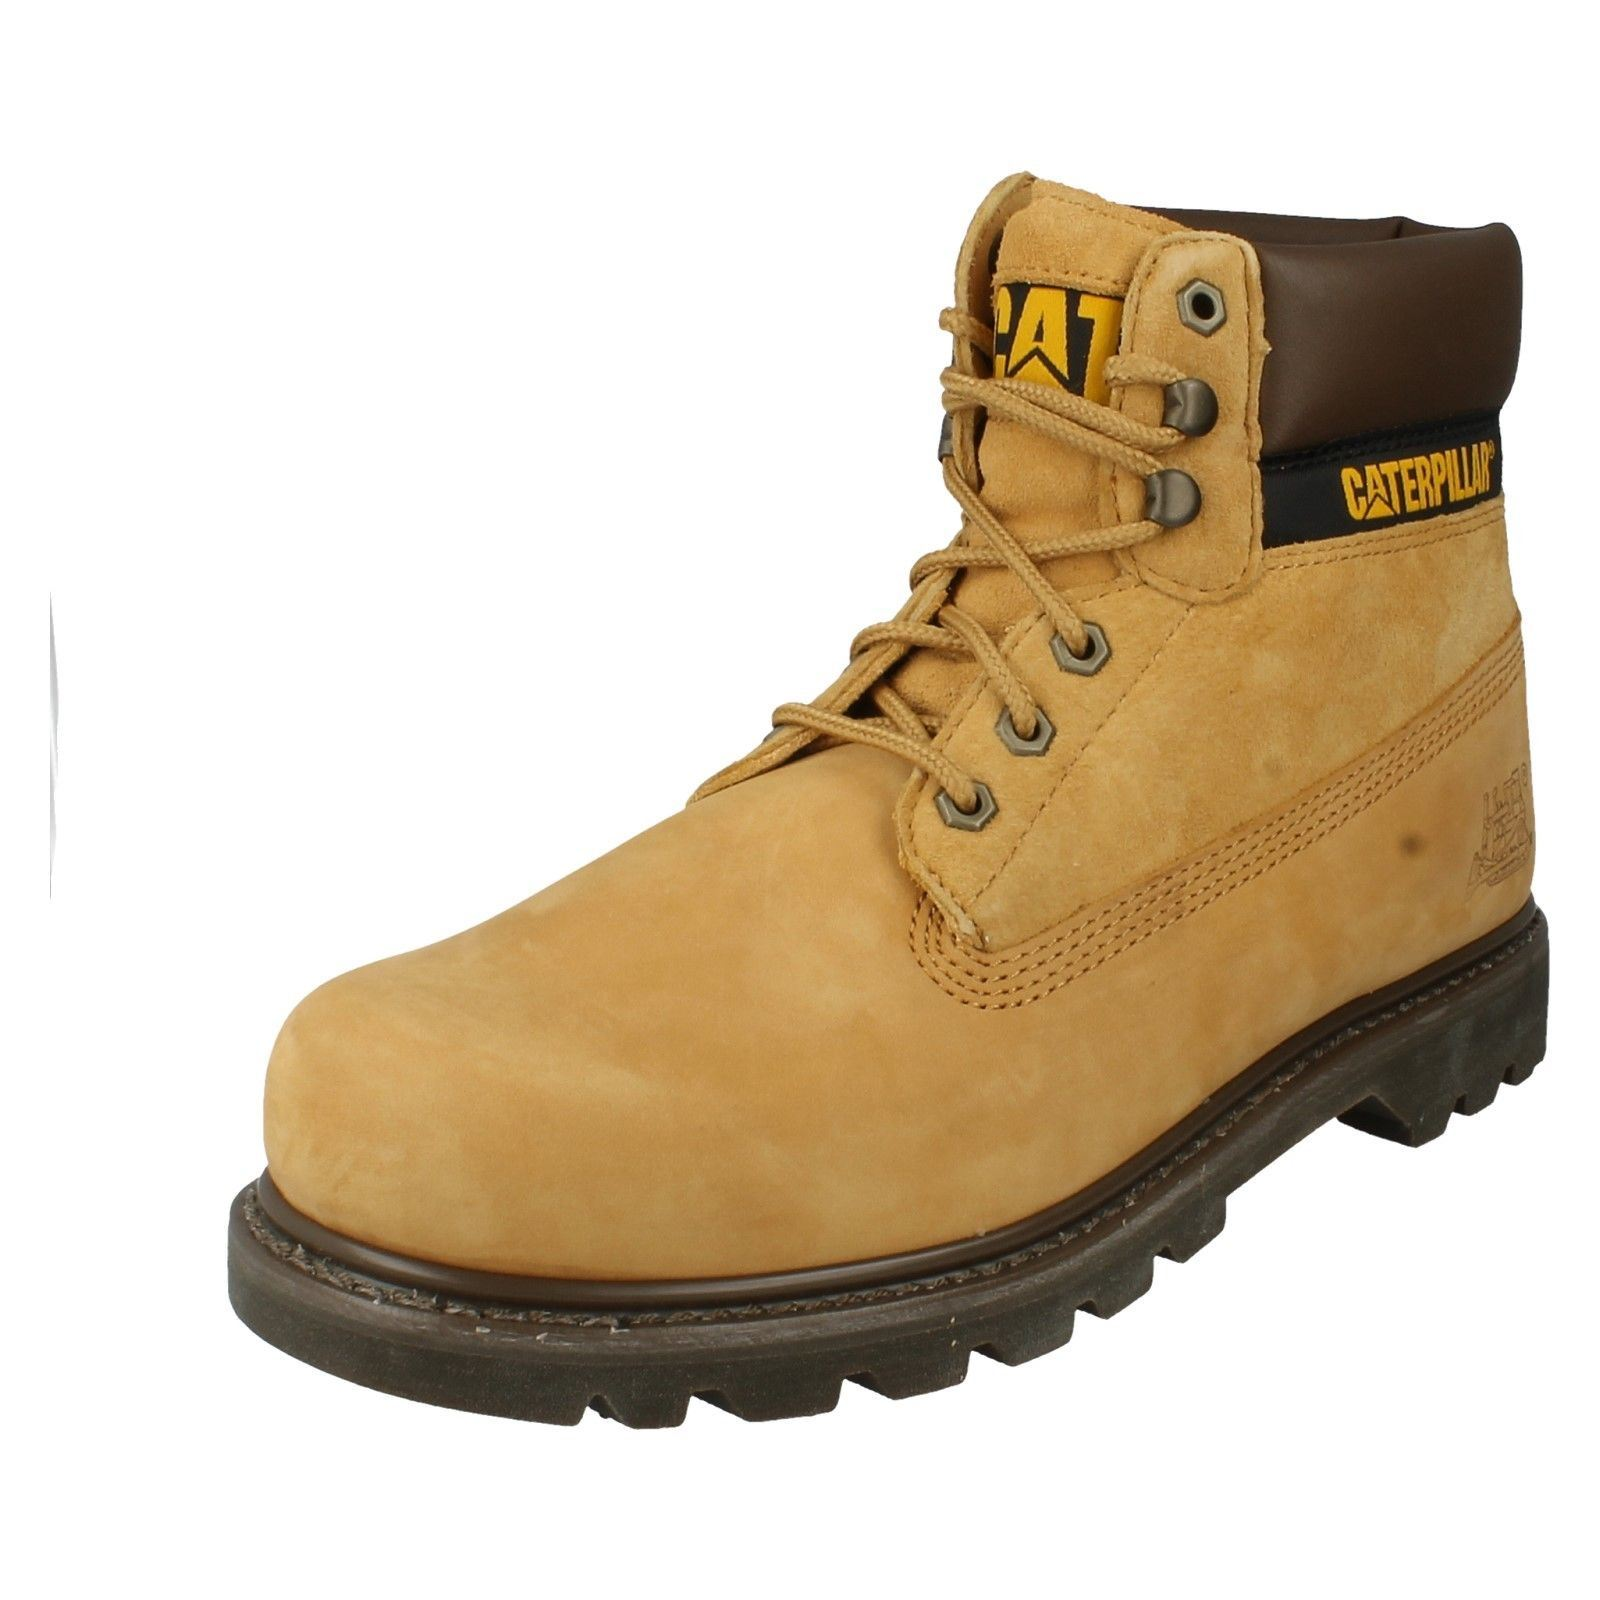 Mens Caterpillar Boot The The Boot Label Colorado 1f80d4